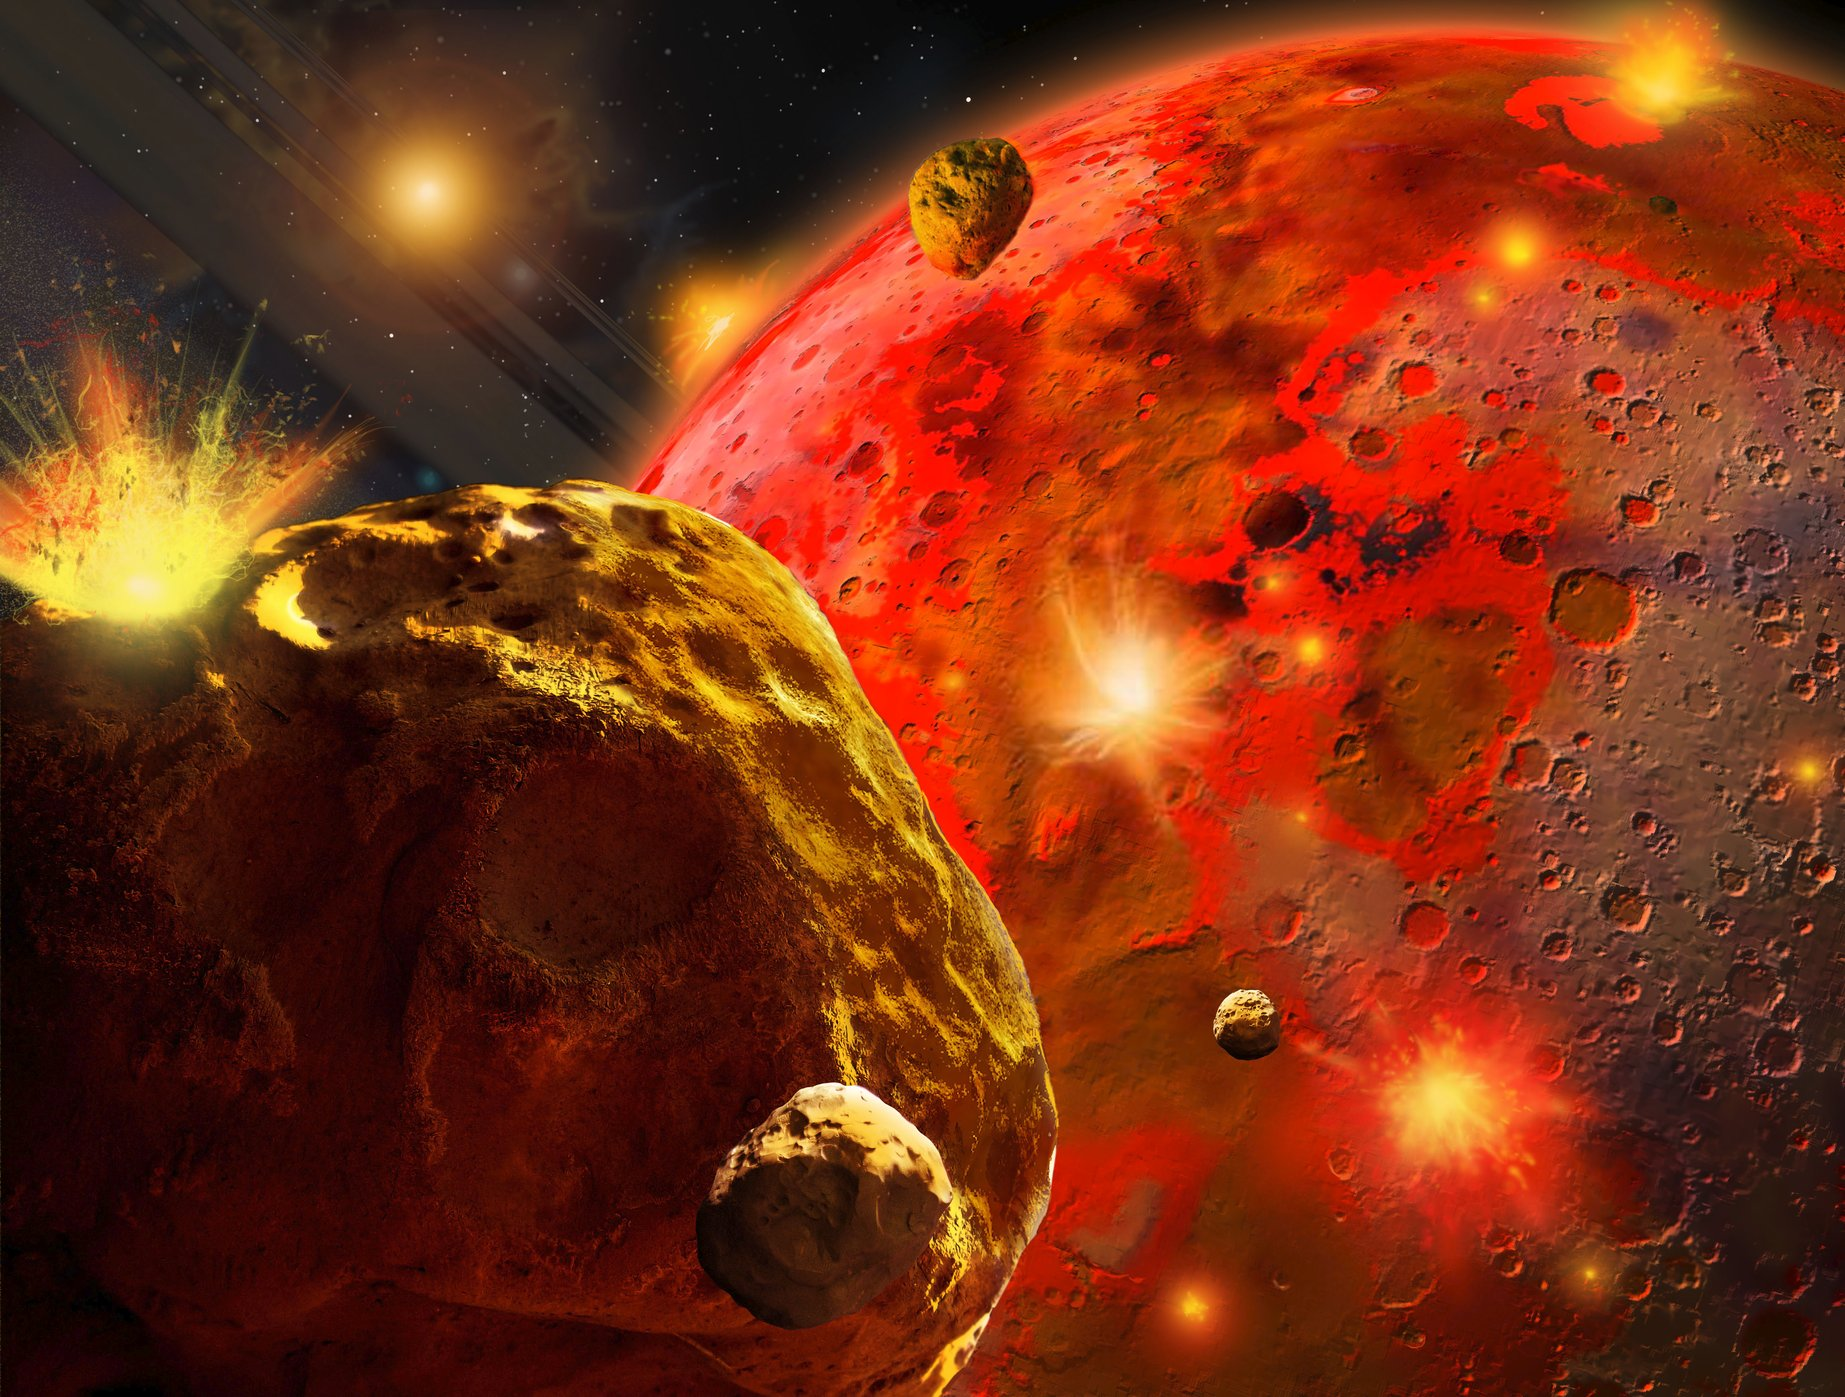 Asteroids of different sizes were impacting on the early Earth, which grew in size. Image: Ron Miller.